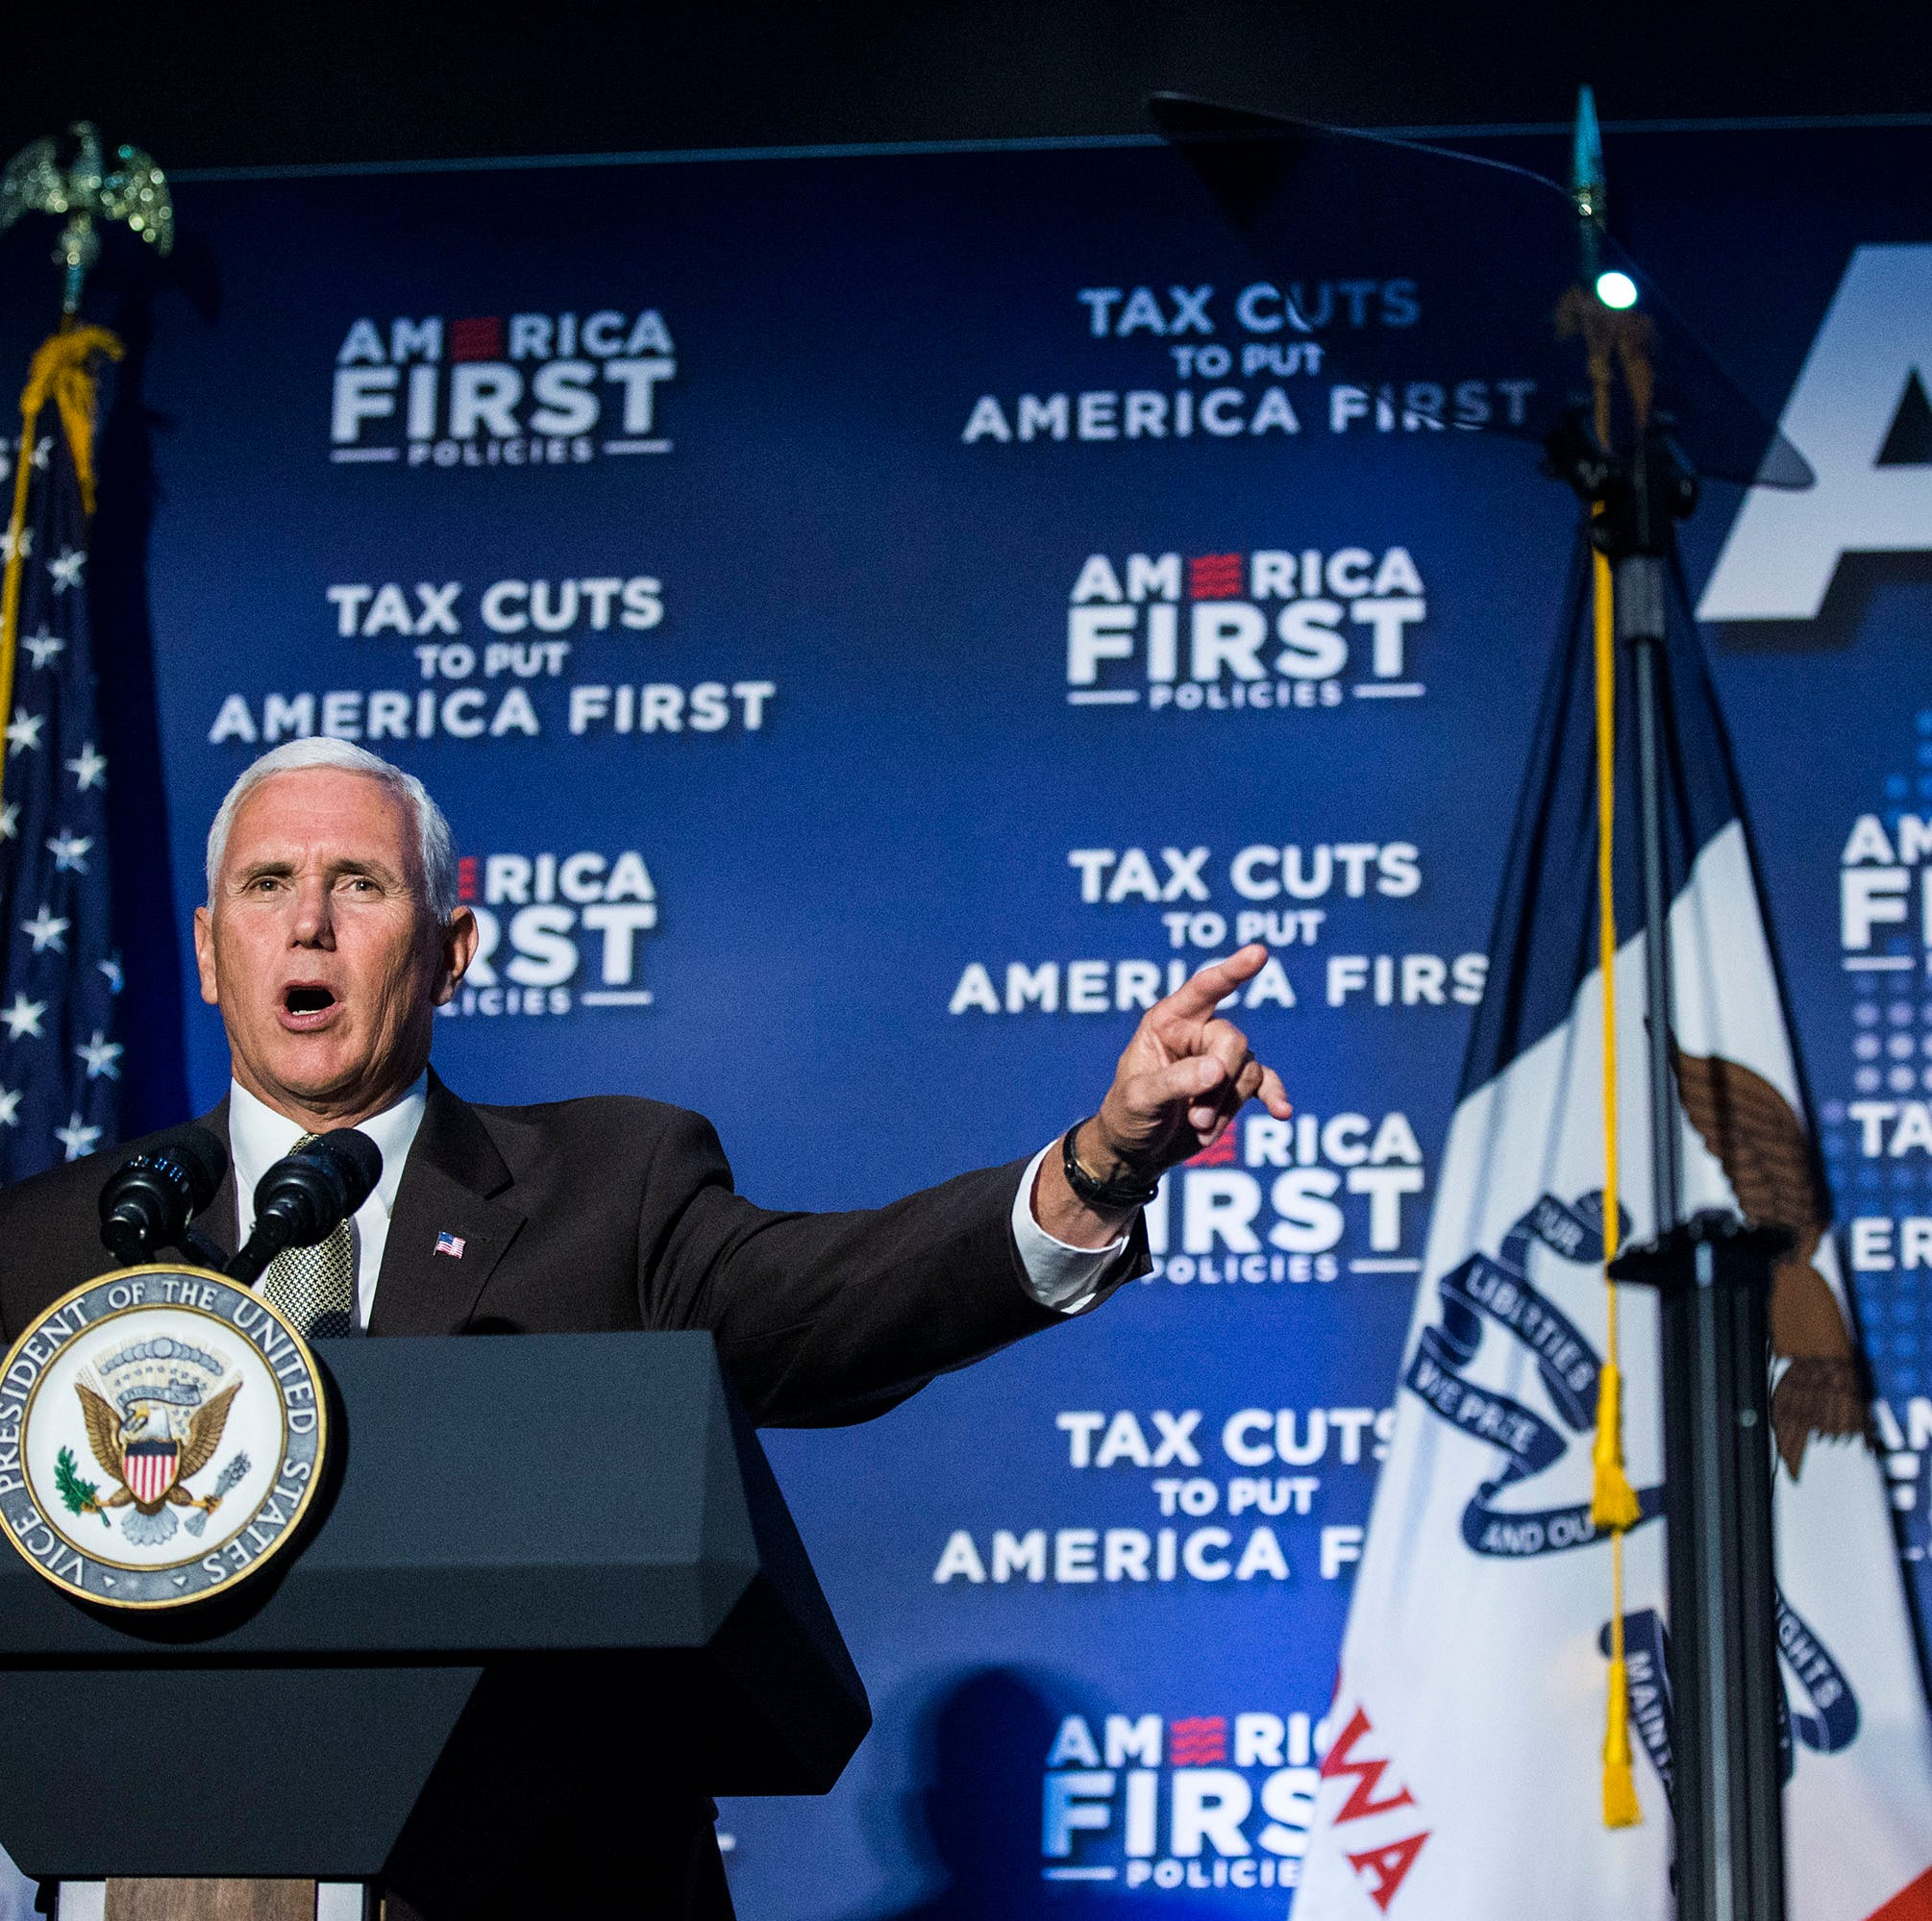 Vice President Mike Pence gives a speech at the America First Policies event in Des Moines on Wednesday, Aug. 15, 2018, at the Iowa Events Center.